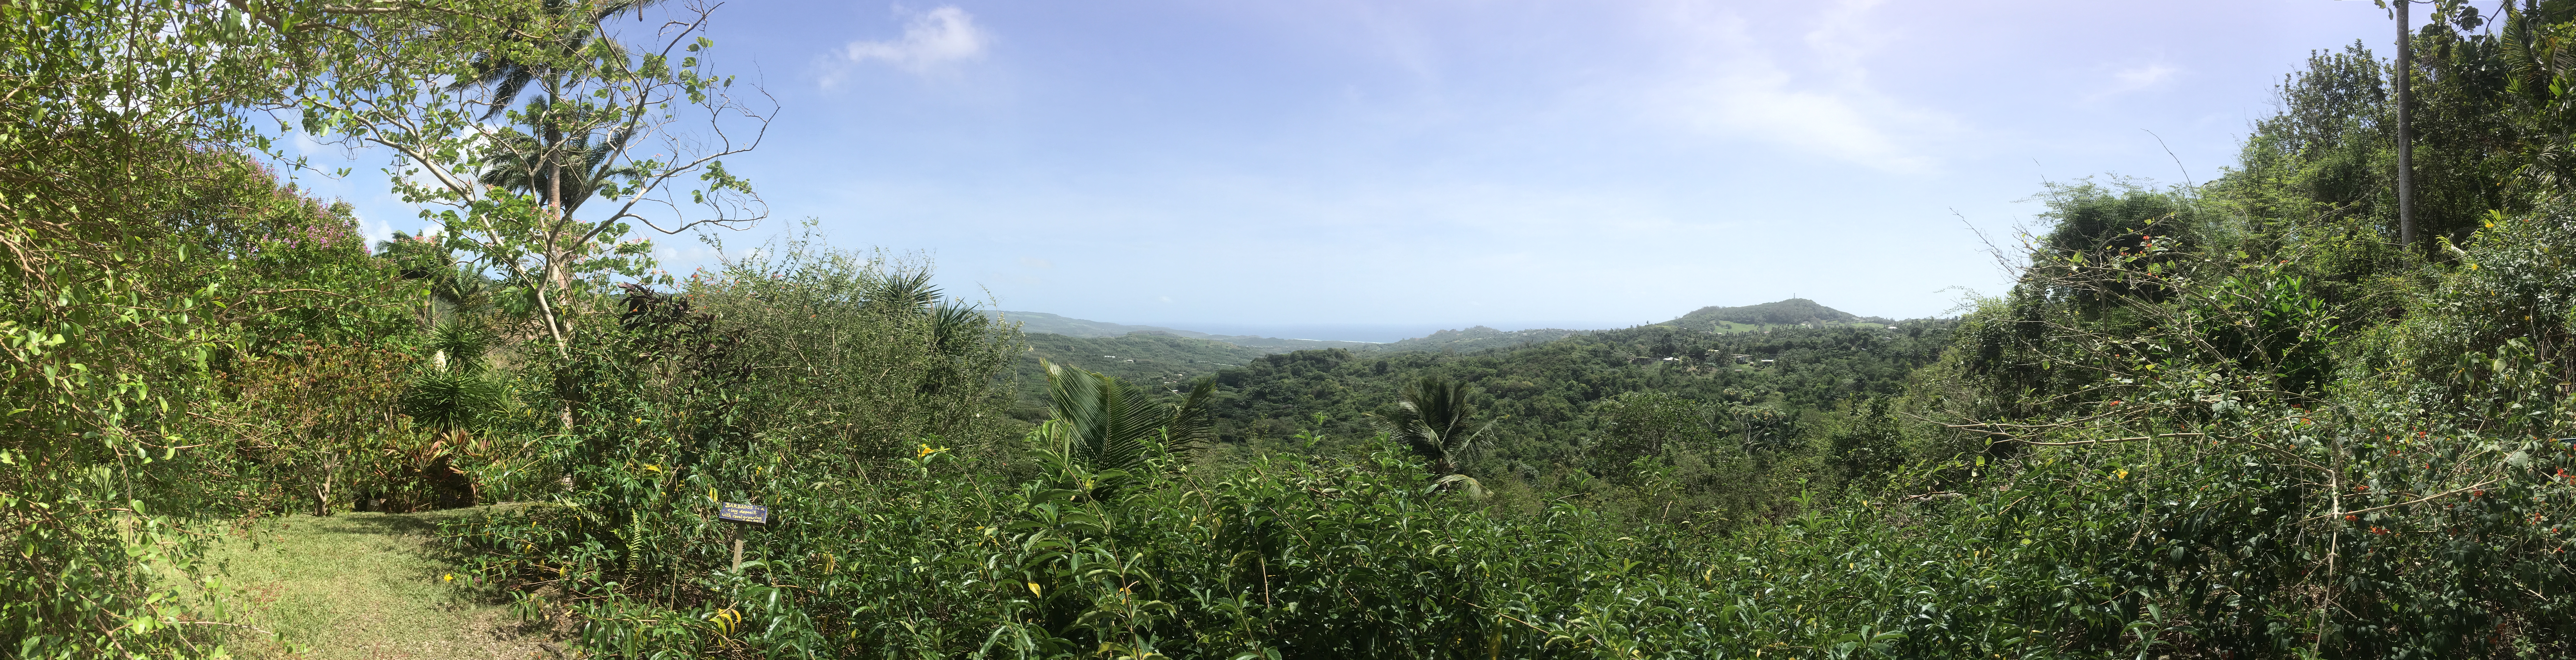 view from Flower Forest, Barbados